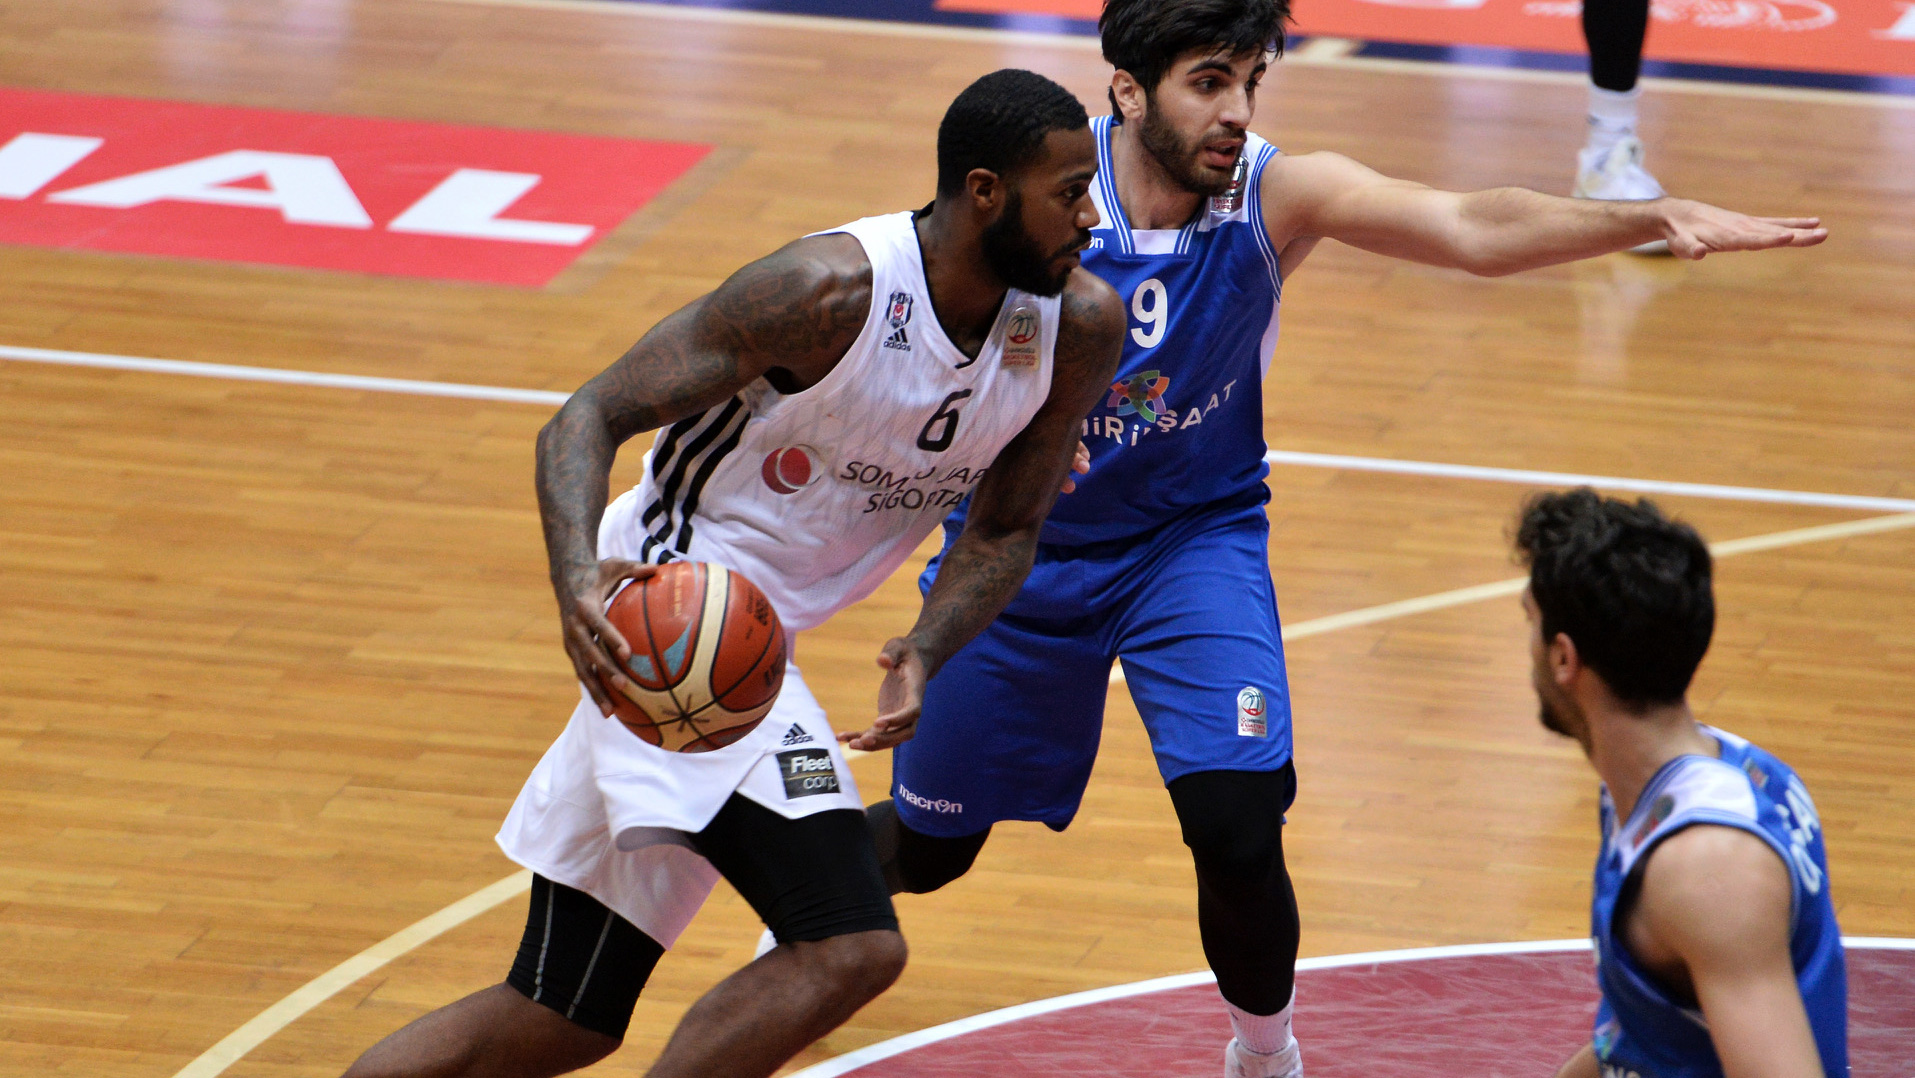 c4ca21af823 Euro step  Why these former NBA players have opted to play overseas rather  than in the league